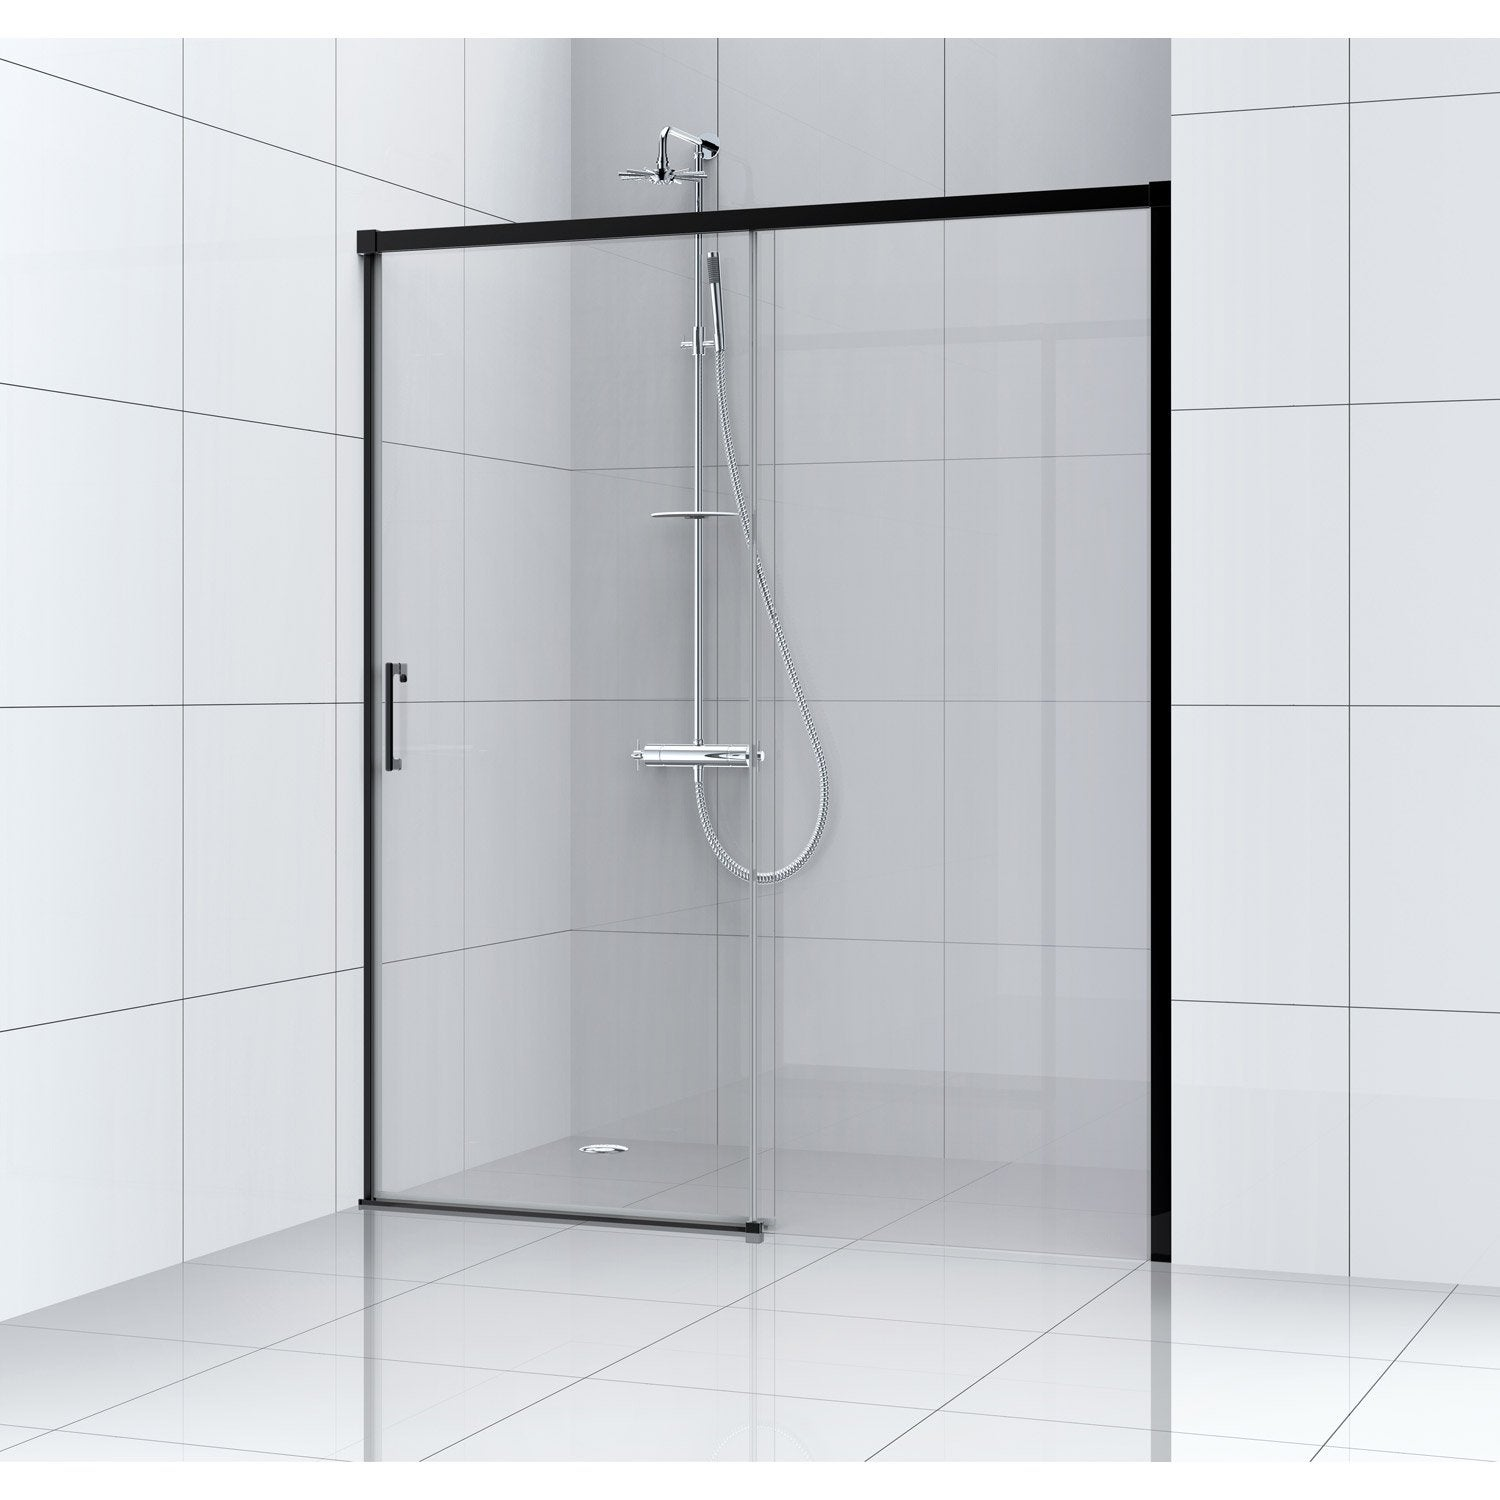 Porte de douche coulissante l 100 cm verre transparent for Porte douche coulissante 80 cm